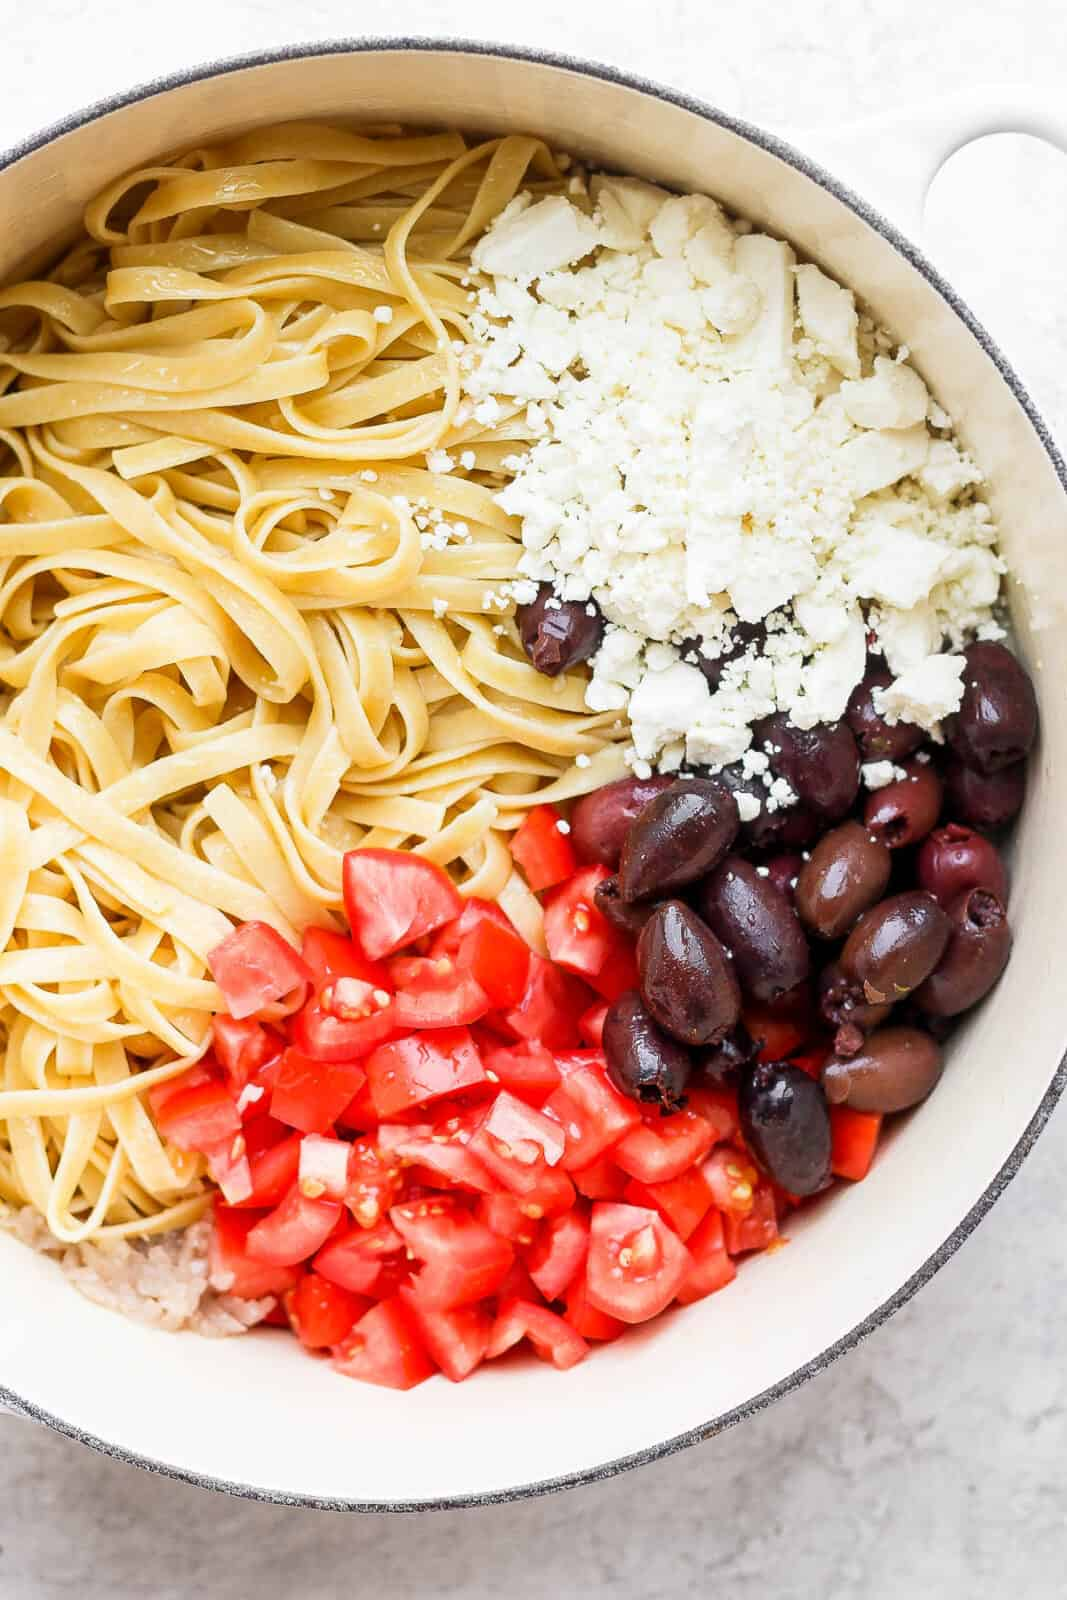 Pan of cooked noodles with feta, olives and tomato.